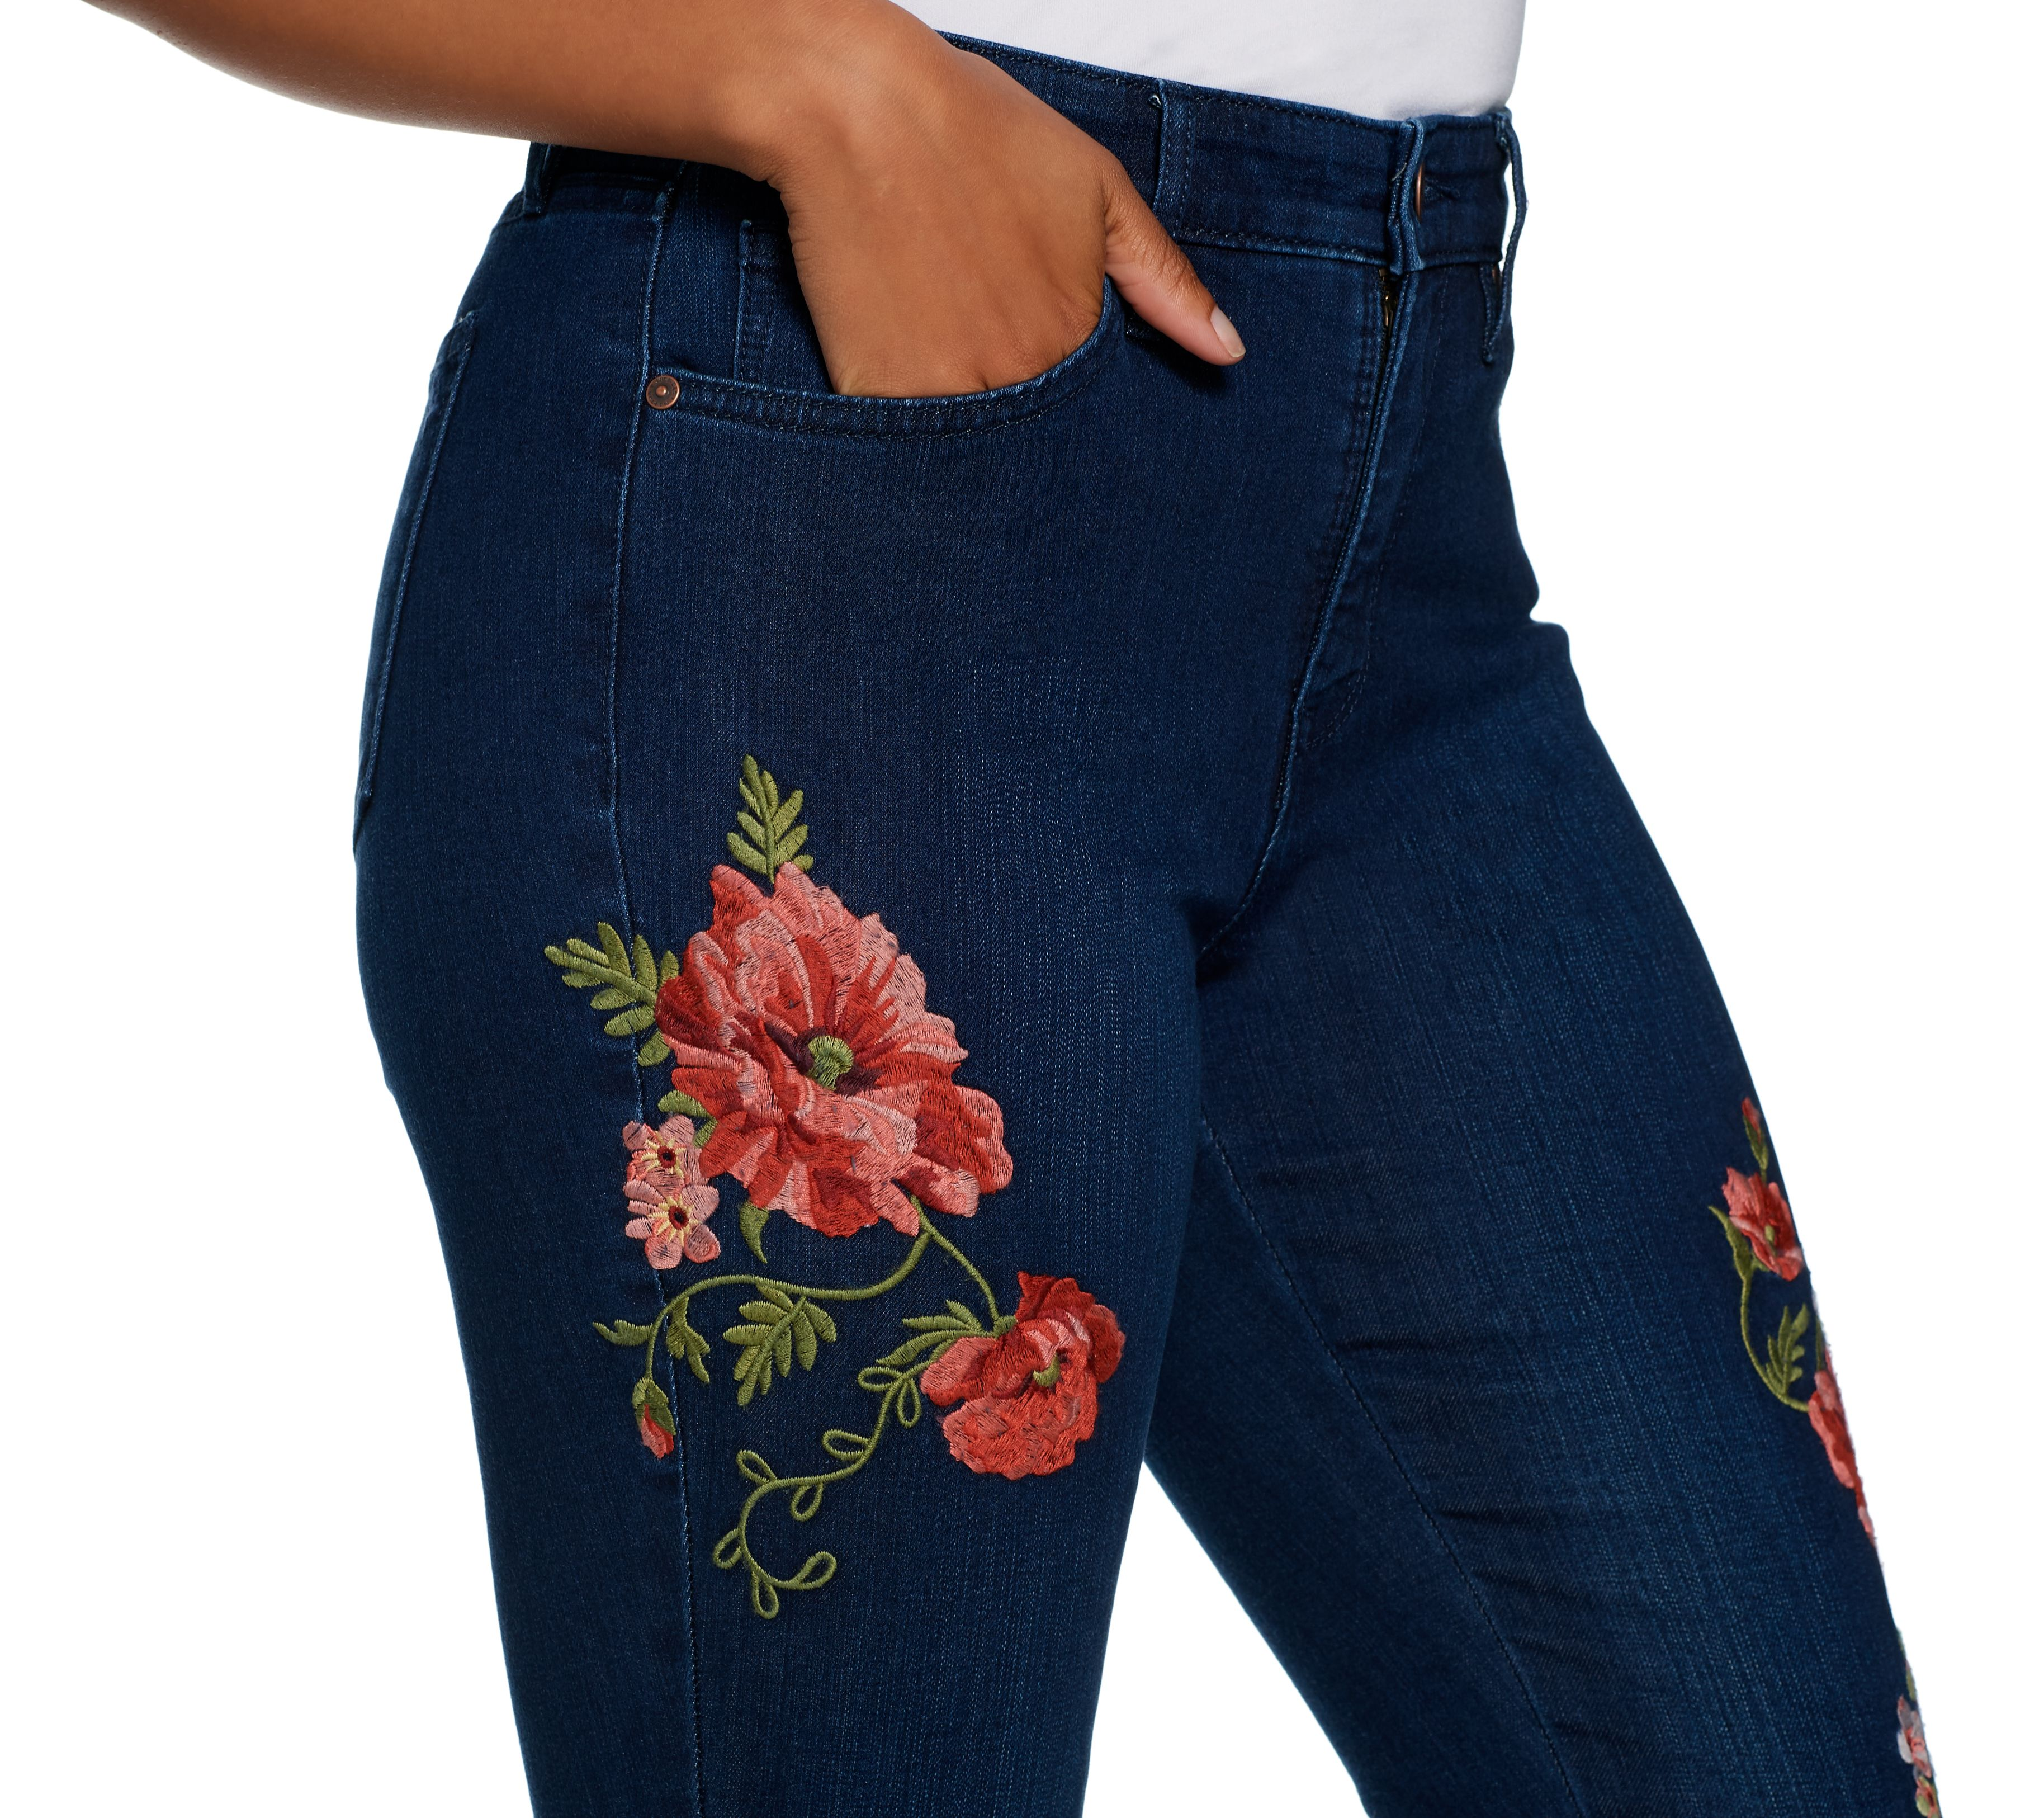 Martha Stewart Regular Floral Embroidered 5 Pocket Ankle Jeans Flower Val Pouch Kuning Page 1